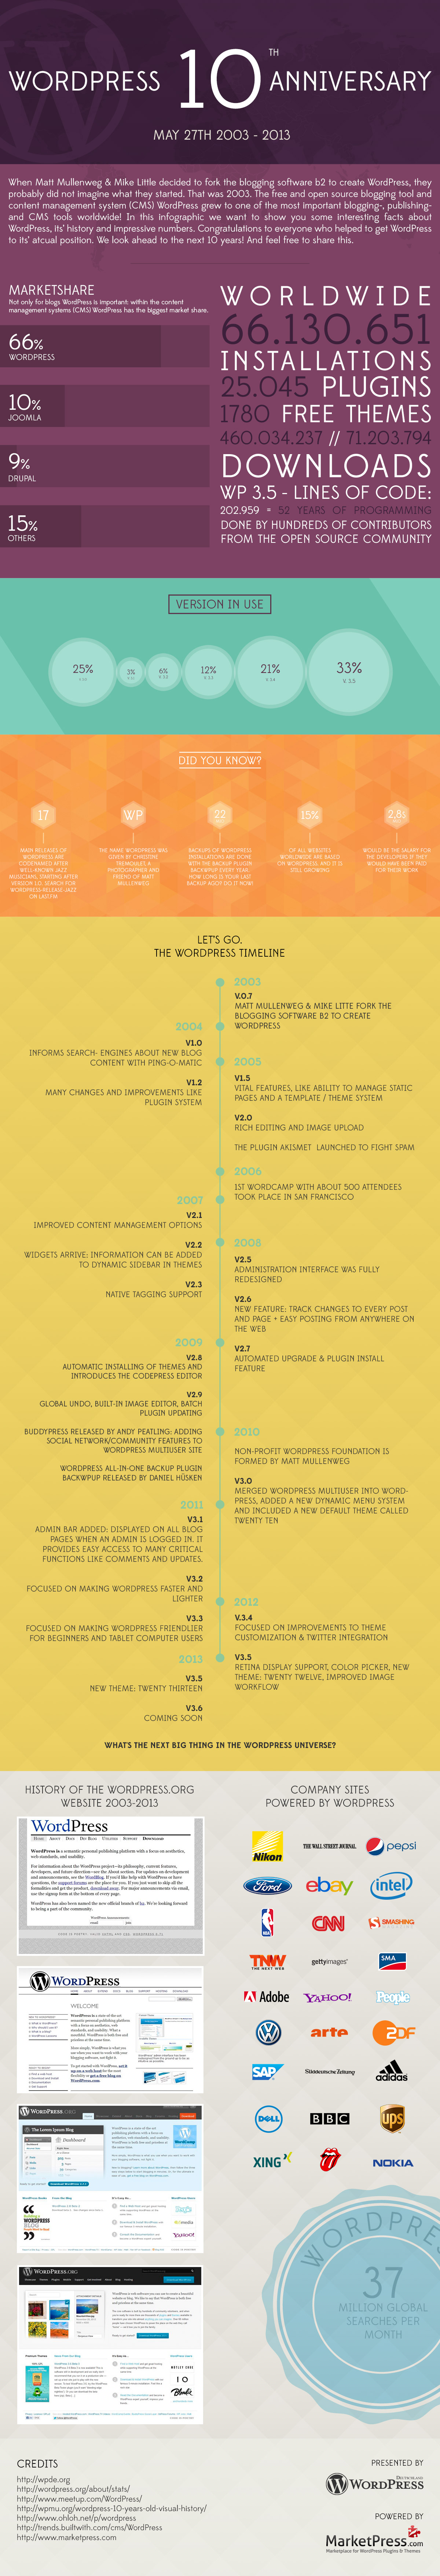 wordpress-anniversary-infographic